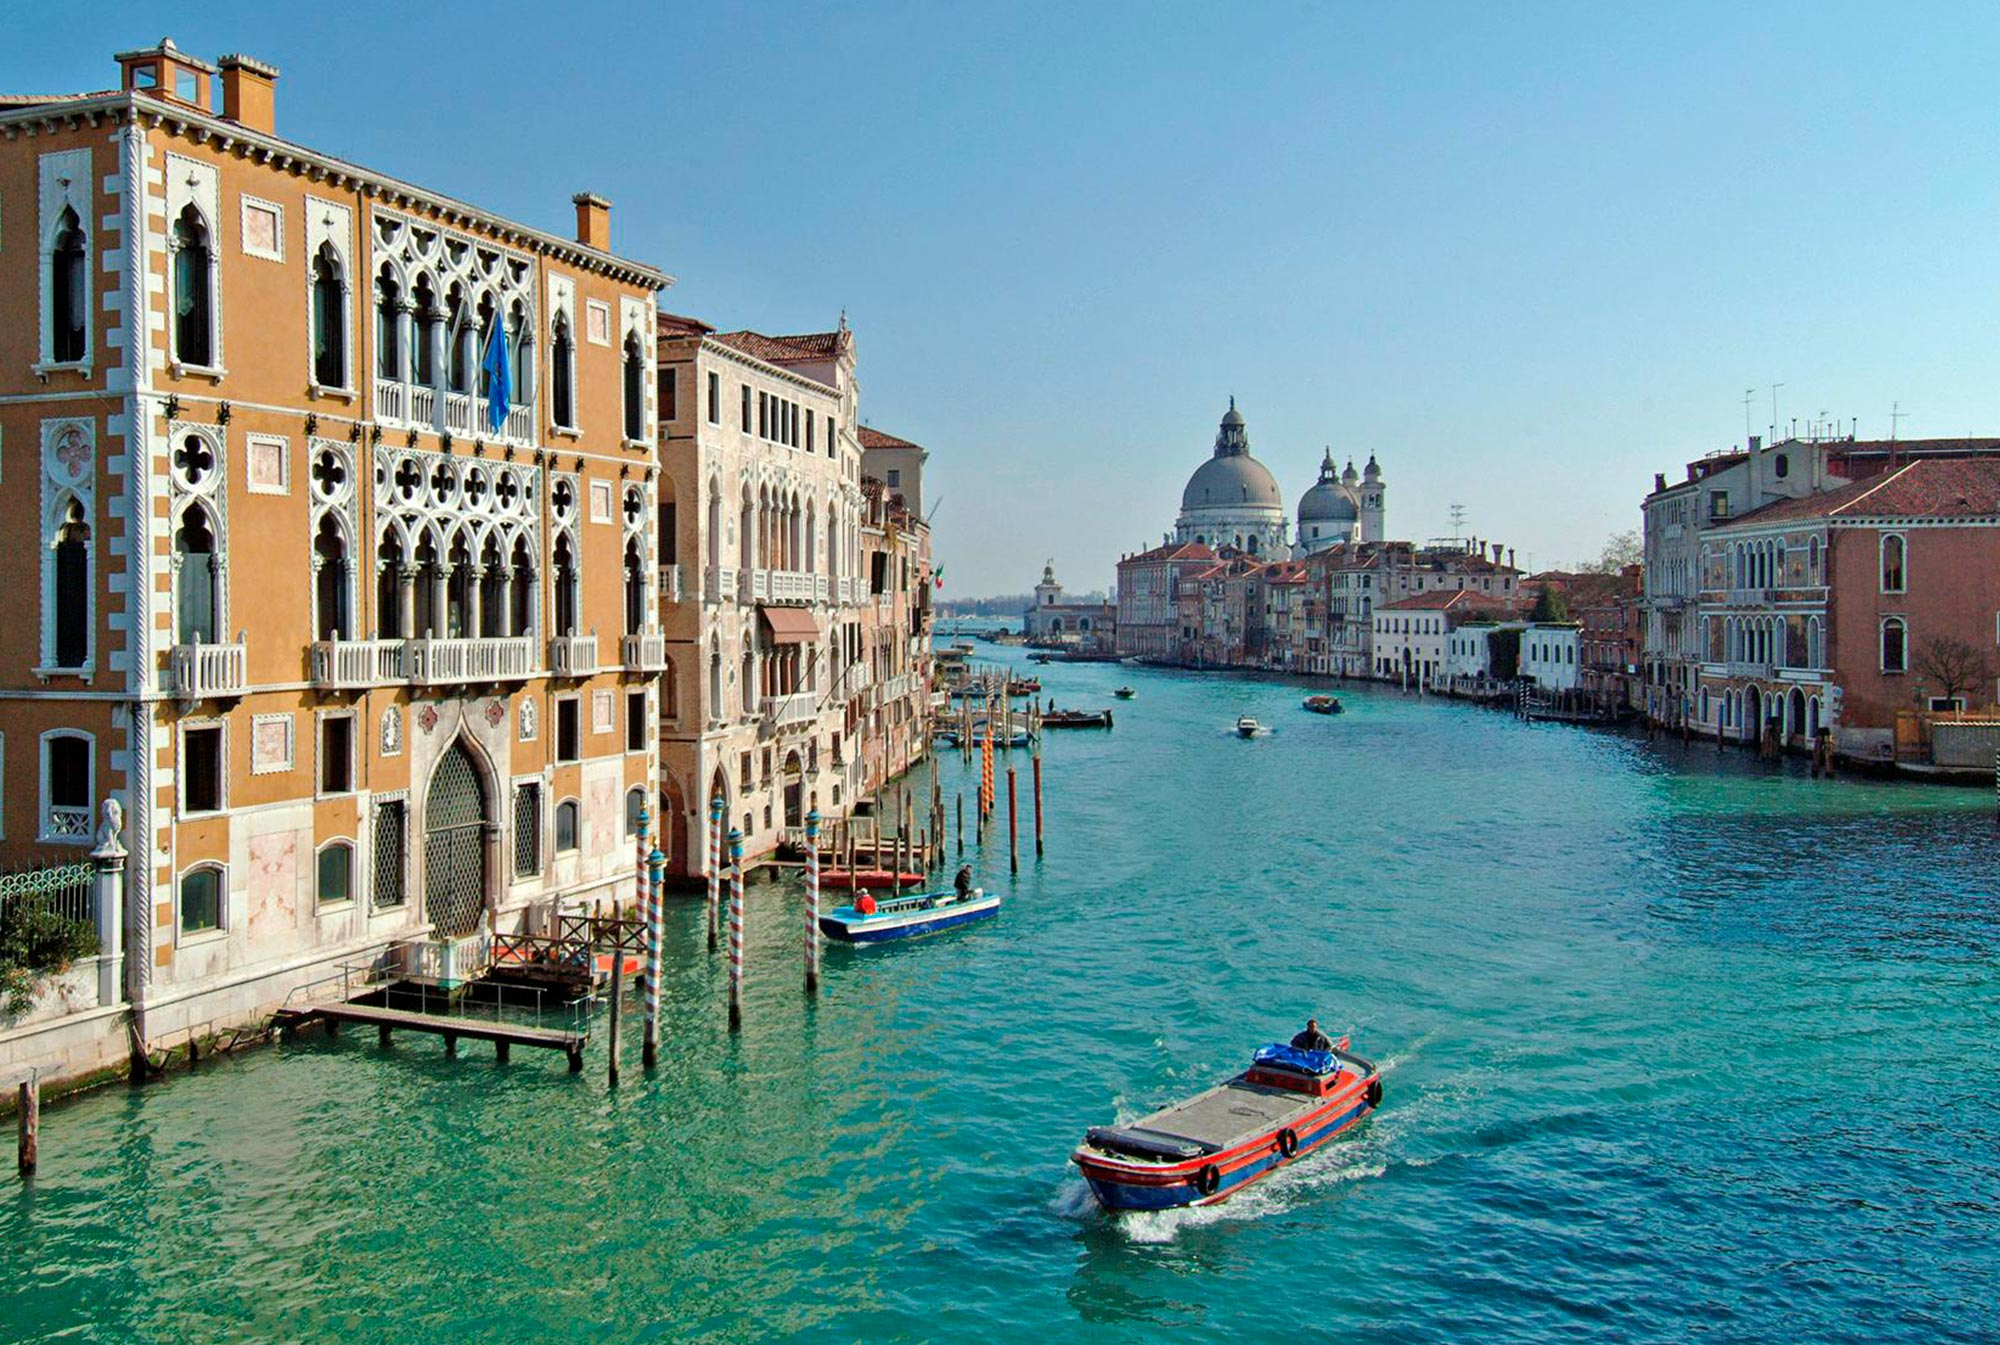 Explore-Italy-Attraction-Grand-Canal-Venice-with-Gondola